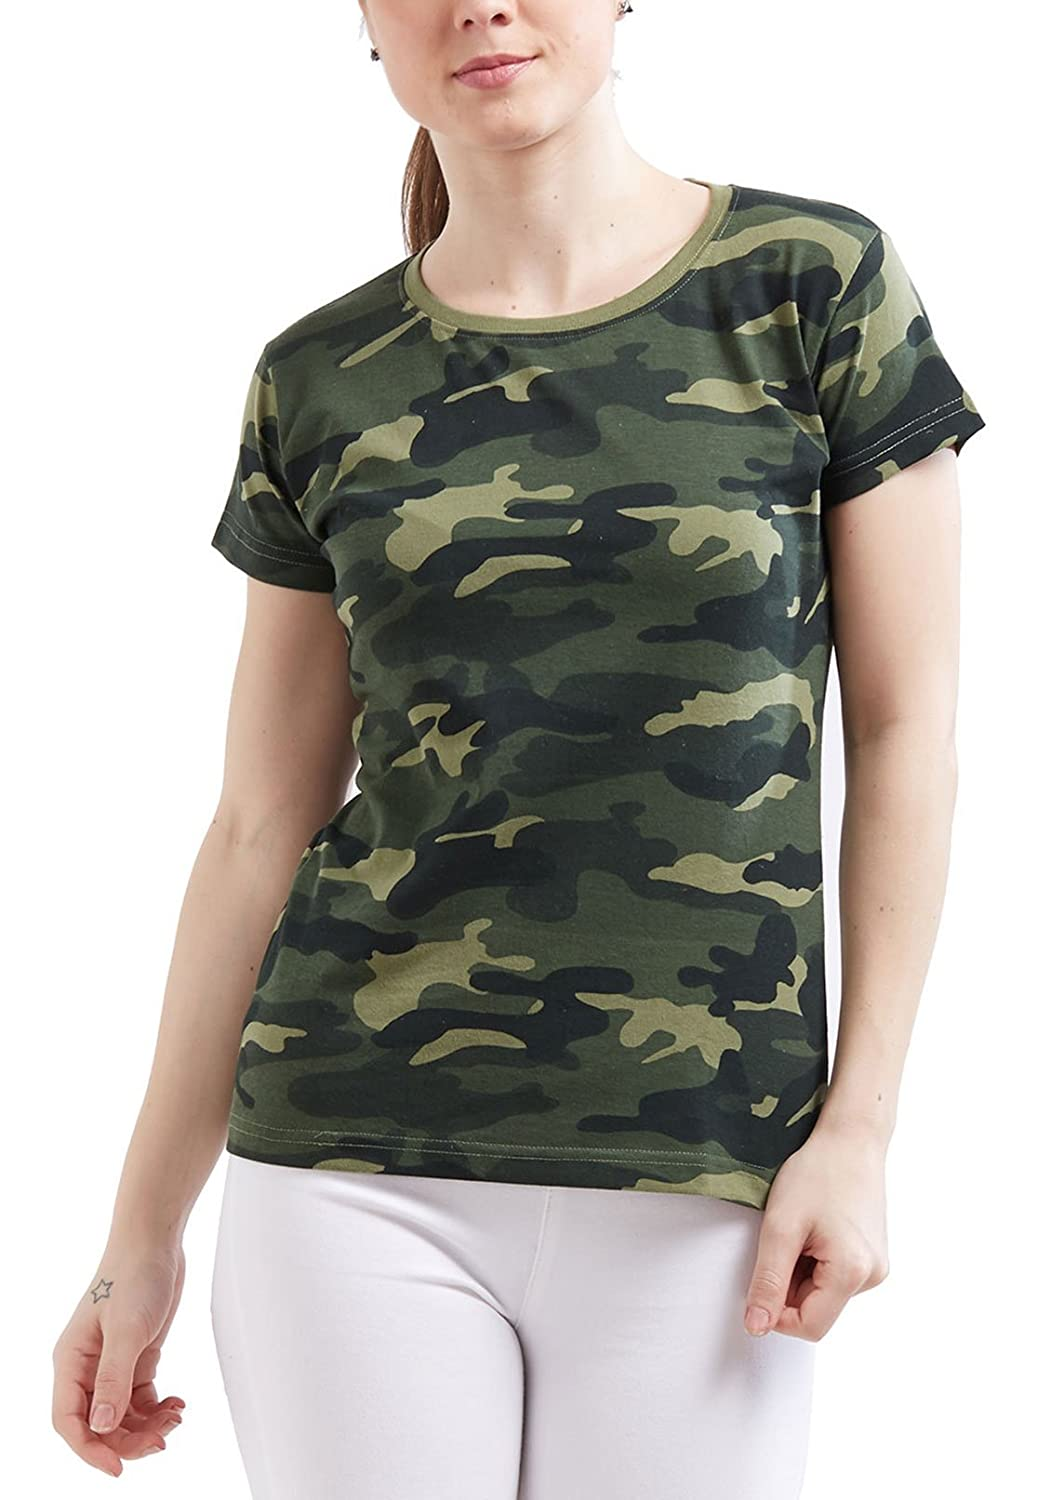 Camouflage Army Military Short Sleeve Top Tees T Shirt